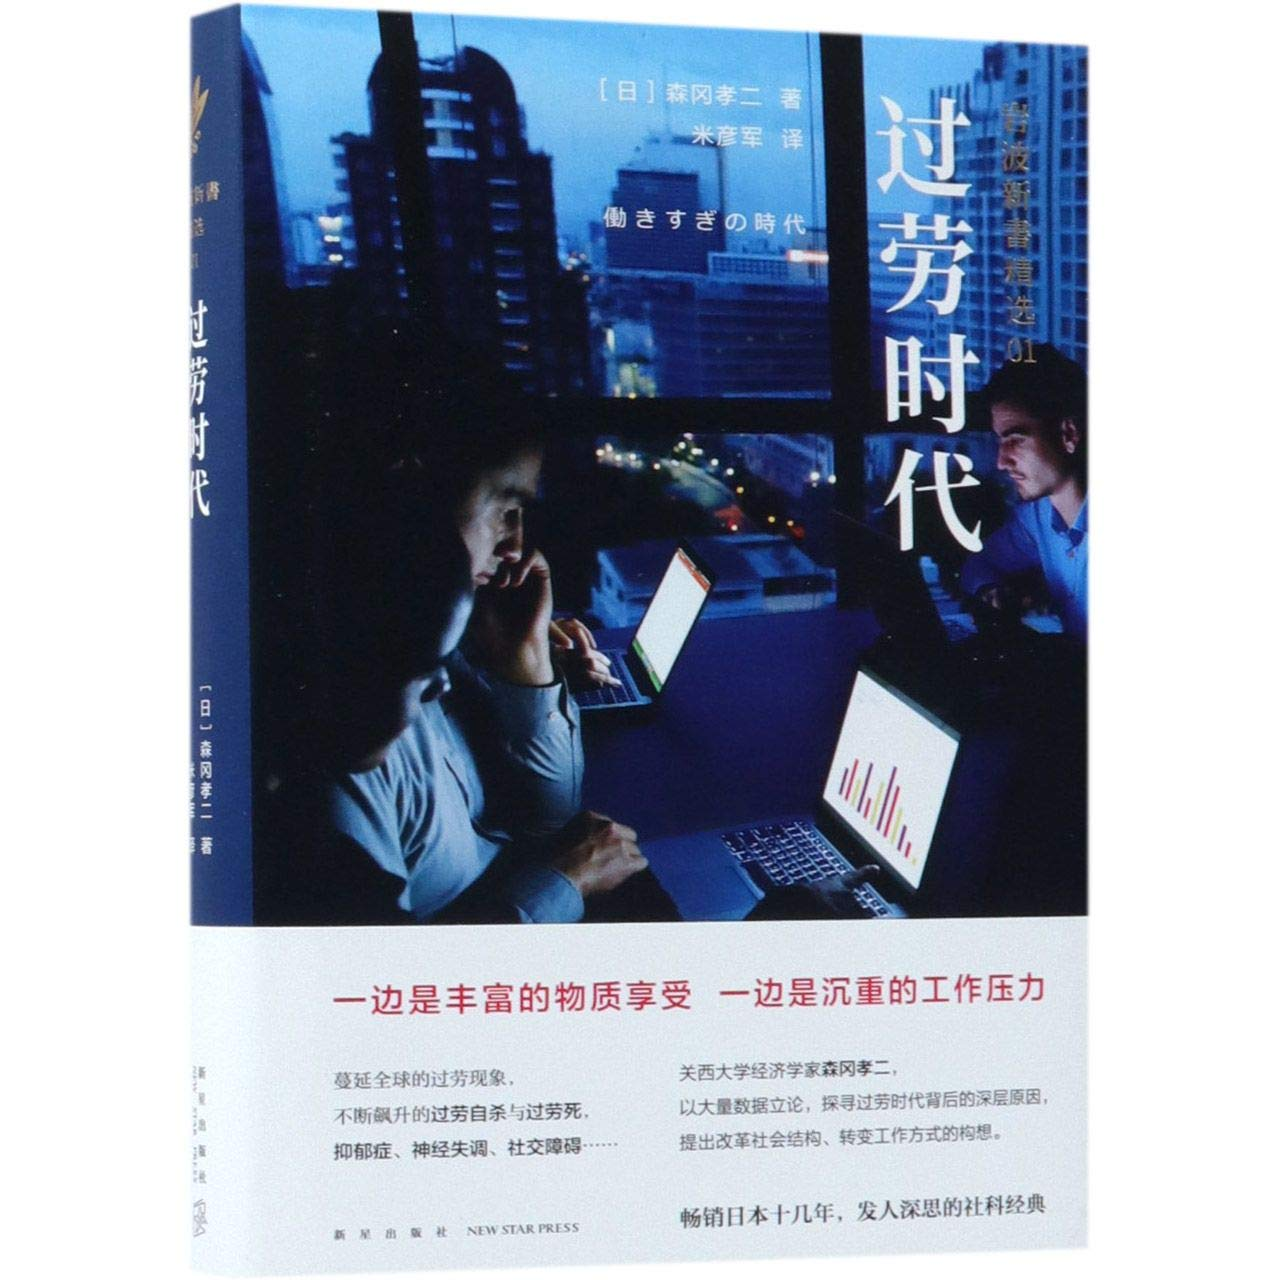 The Overwork Era (Chinese Edition) By Morioka Koji (Author)